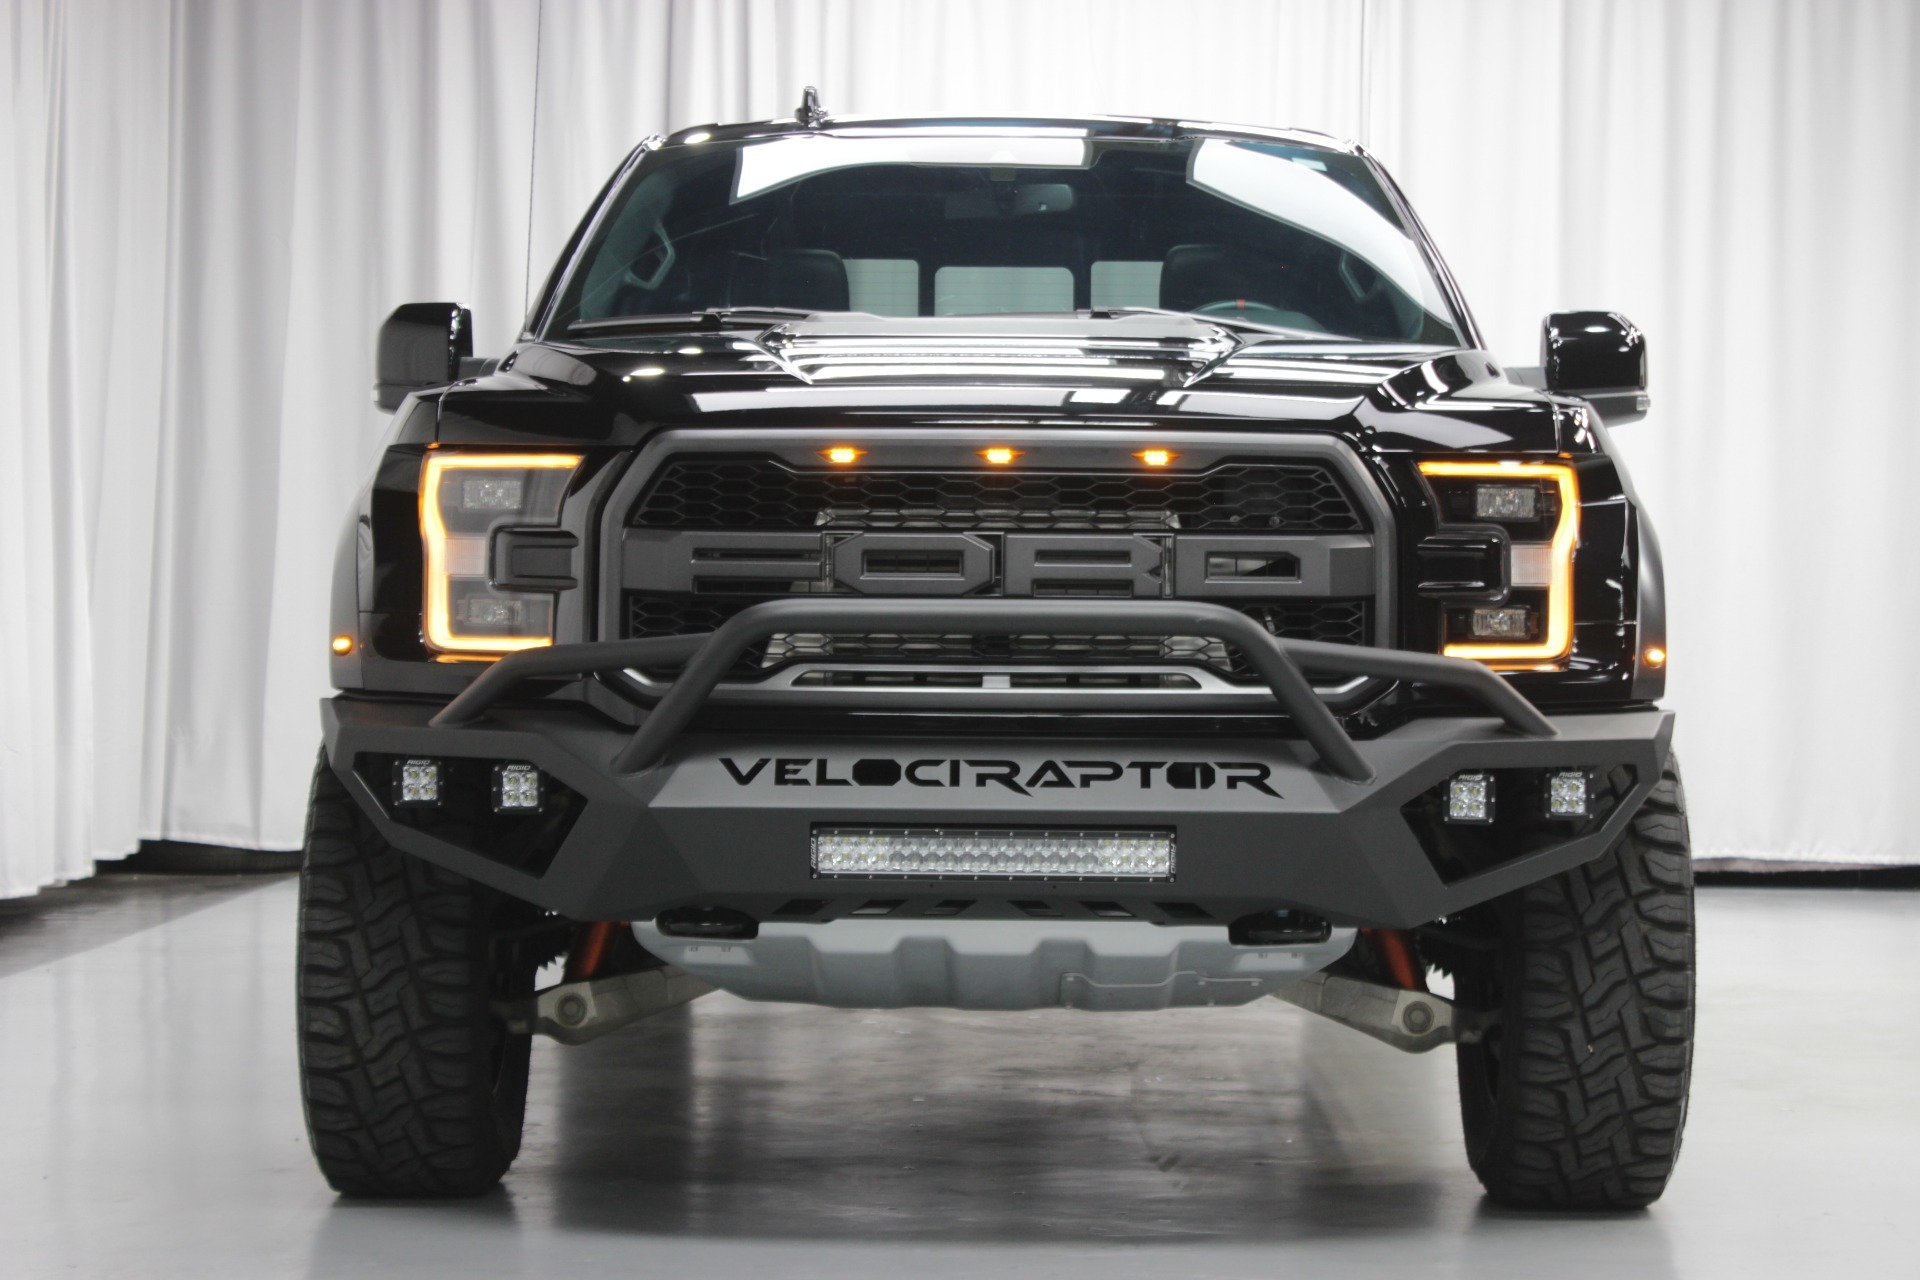 Used 2019 Ford F-150 RAPTOR 4x4 HENNESSY VELOCIRAPTOR VR600 UPGRADE (600HP) for sale $99,995 at Formula Imports in Charlotte NC 28227 4